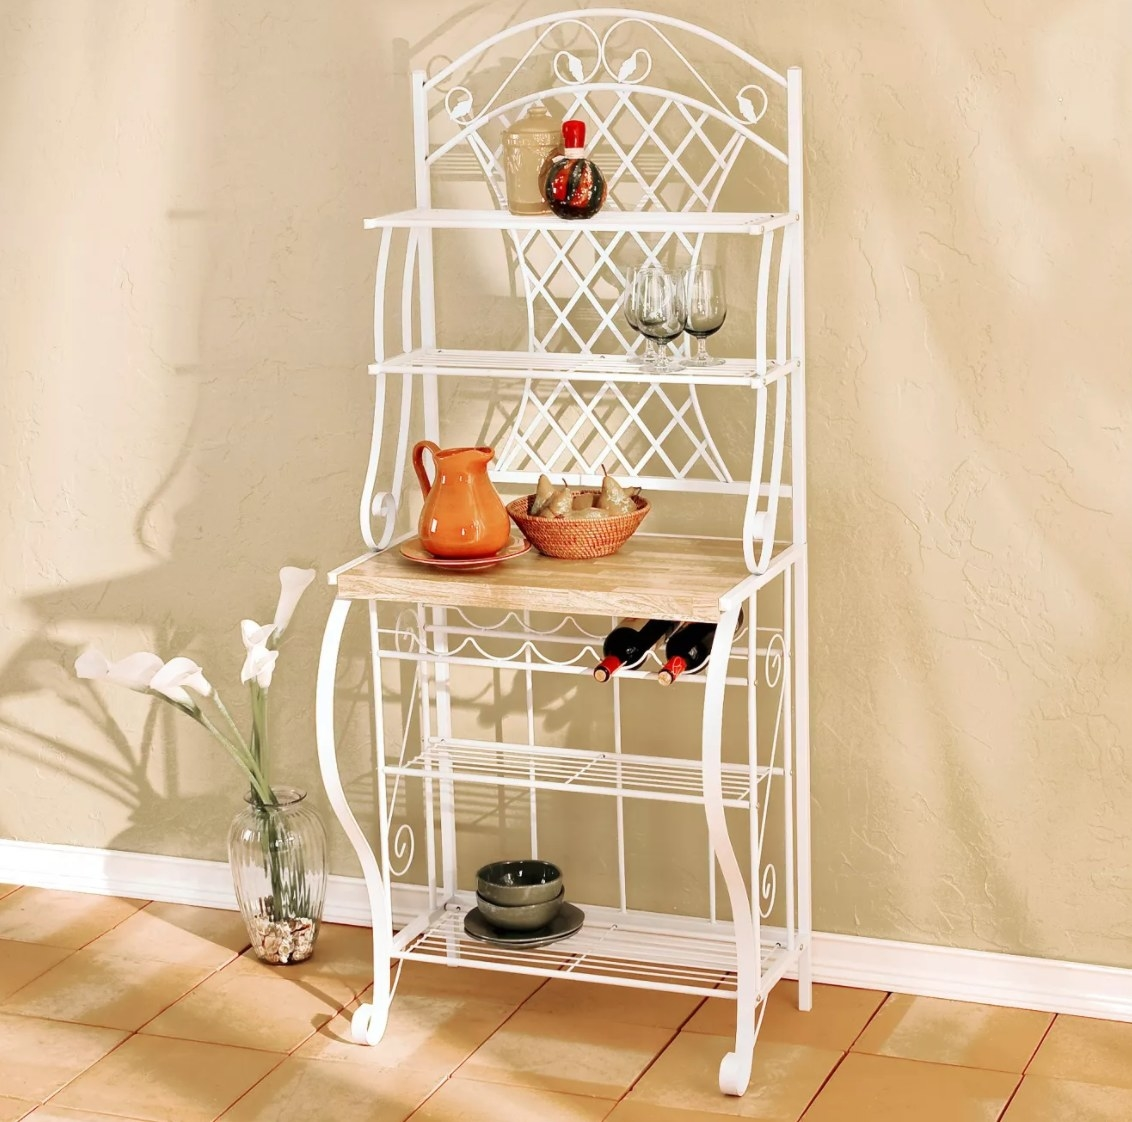 The baker's rack in white metal with a wood bar